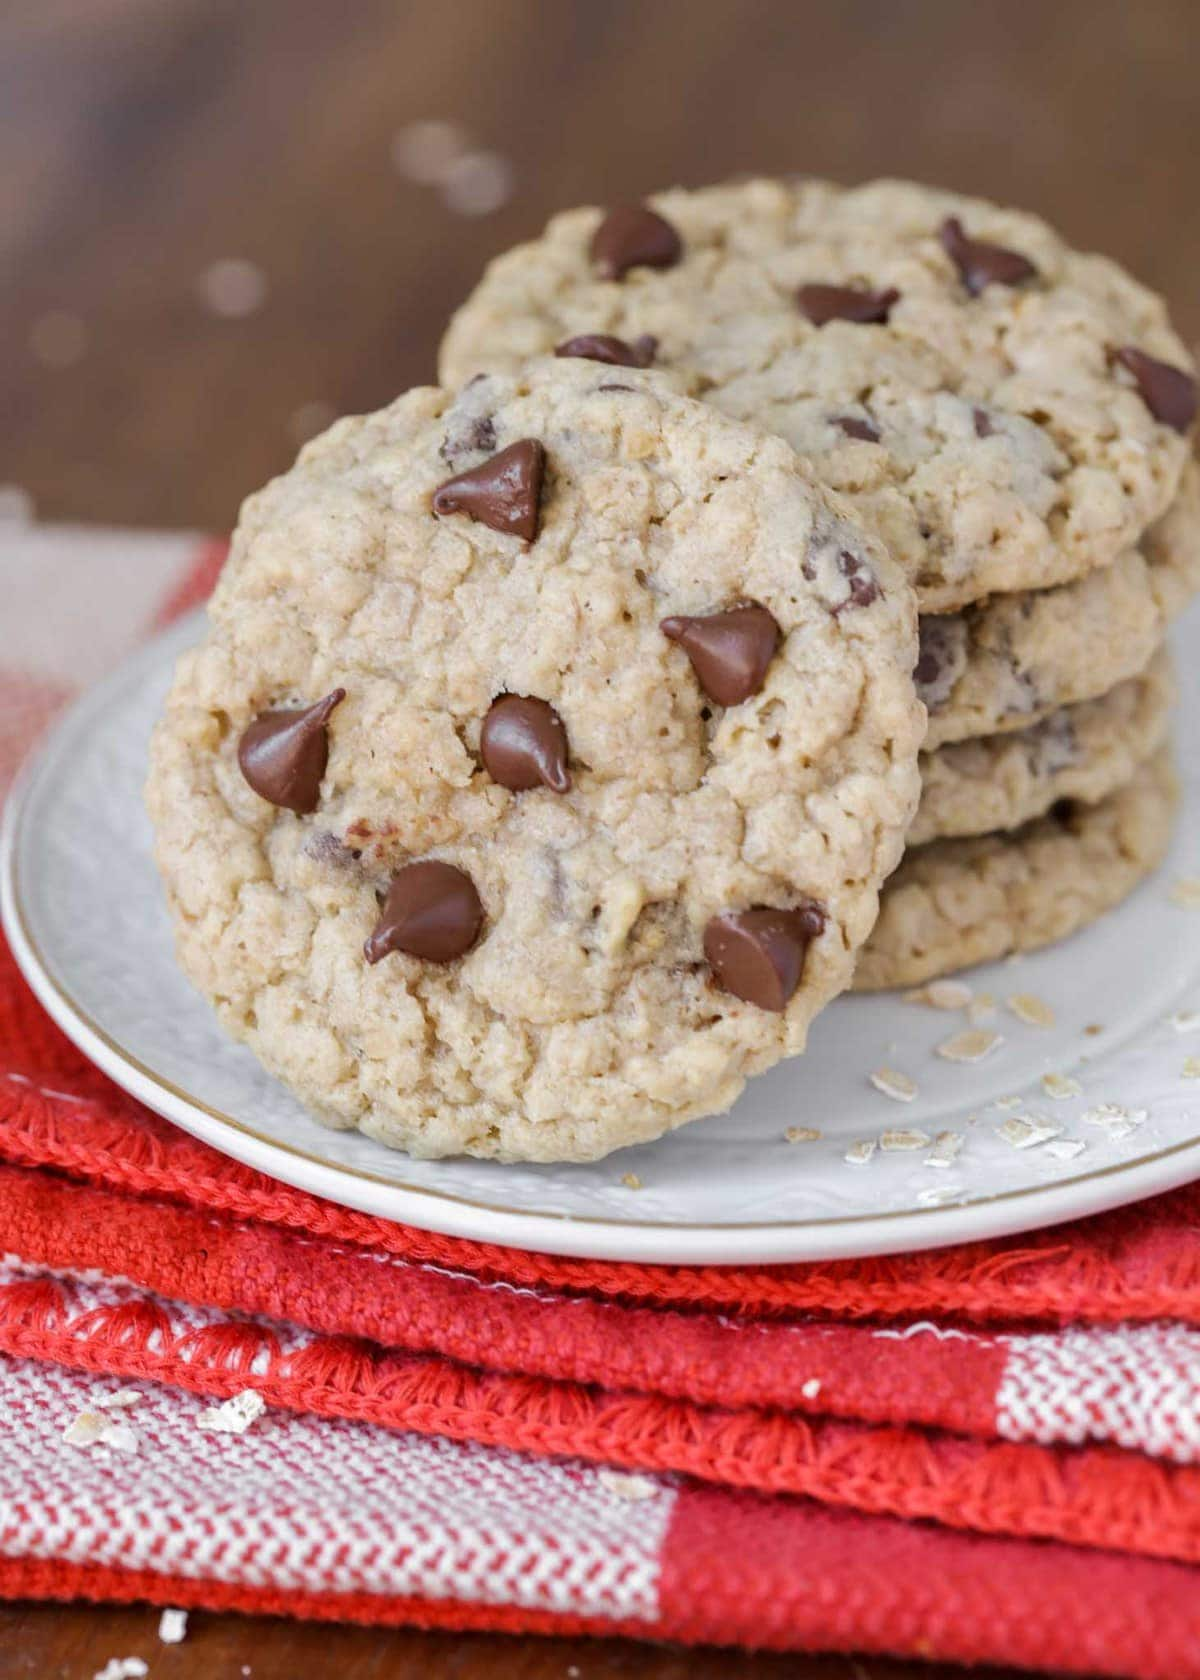 Chewy oatmeal chocolate chip cookies on a white plate